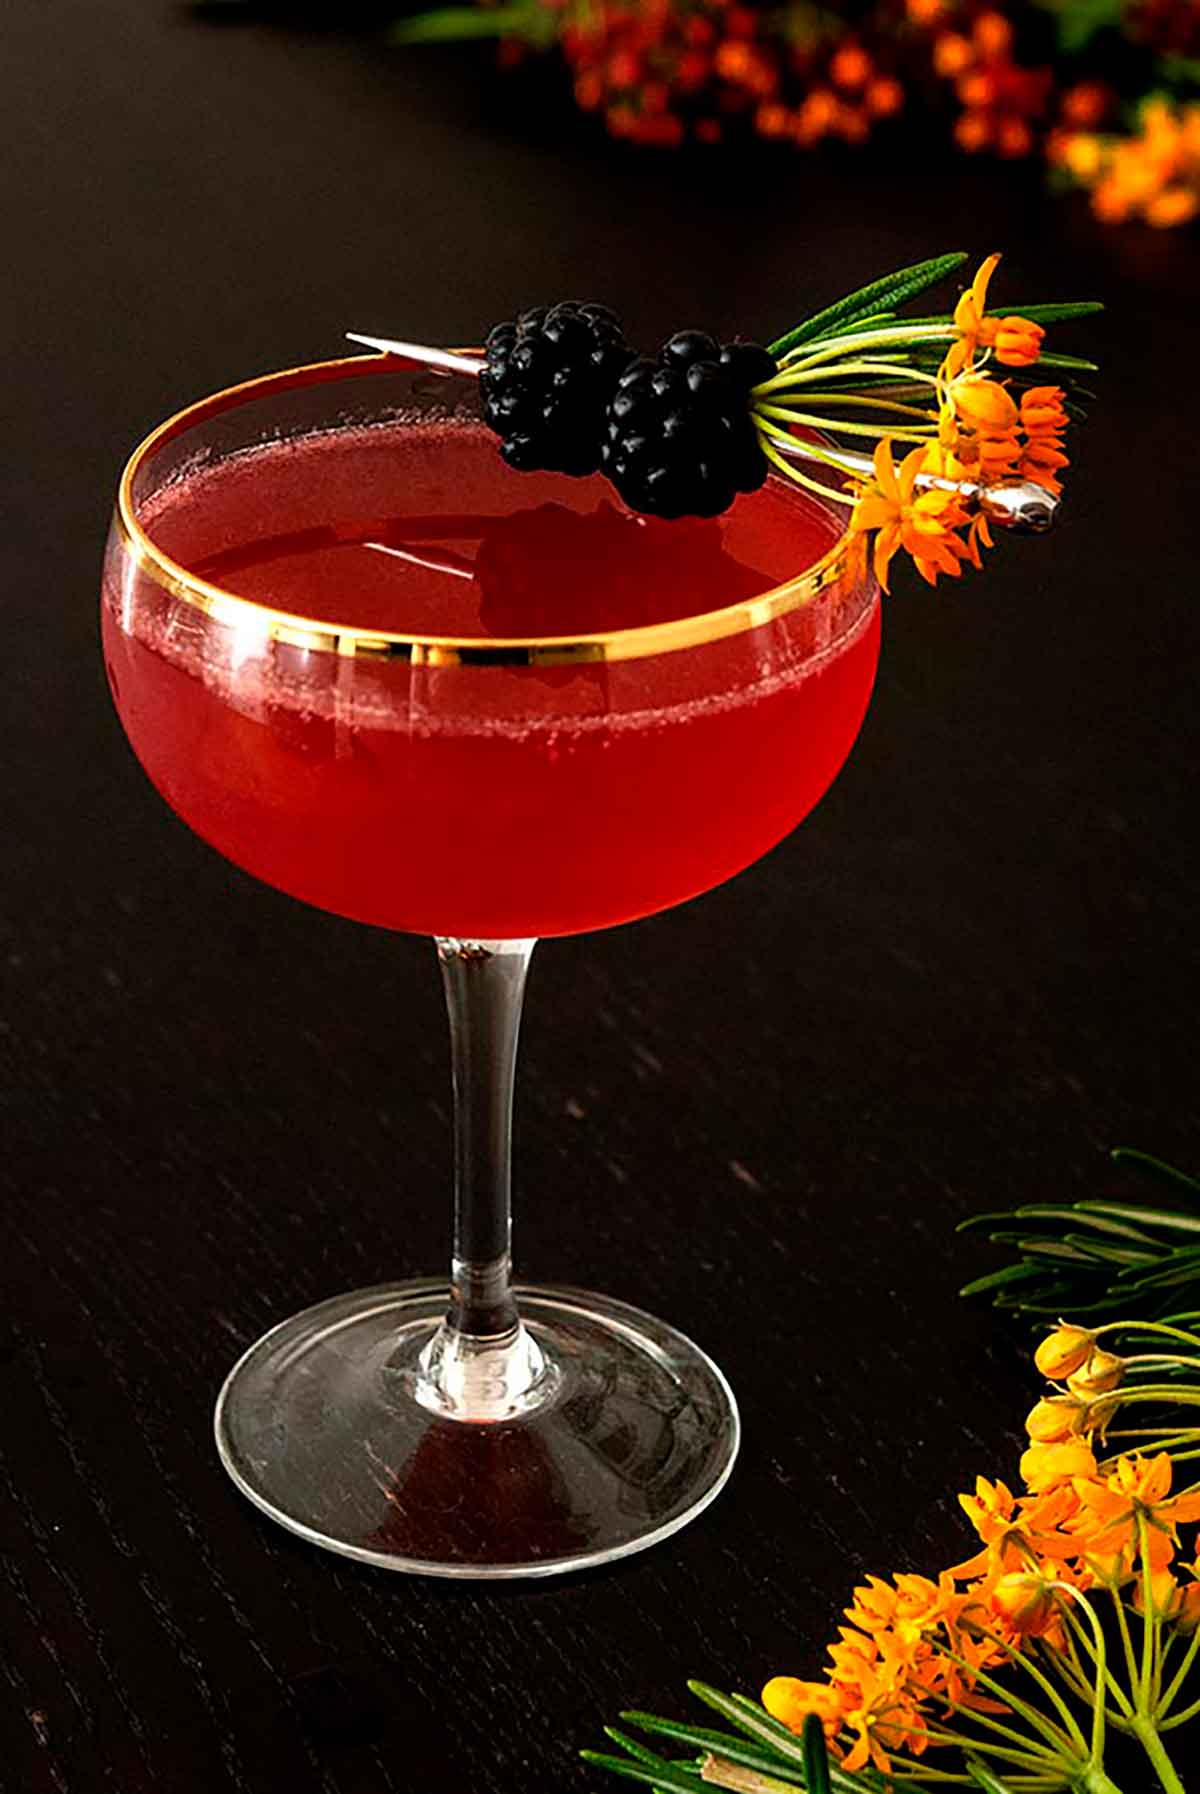 A cocktail on a wood table, garnished with flowers and blackberries.